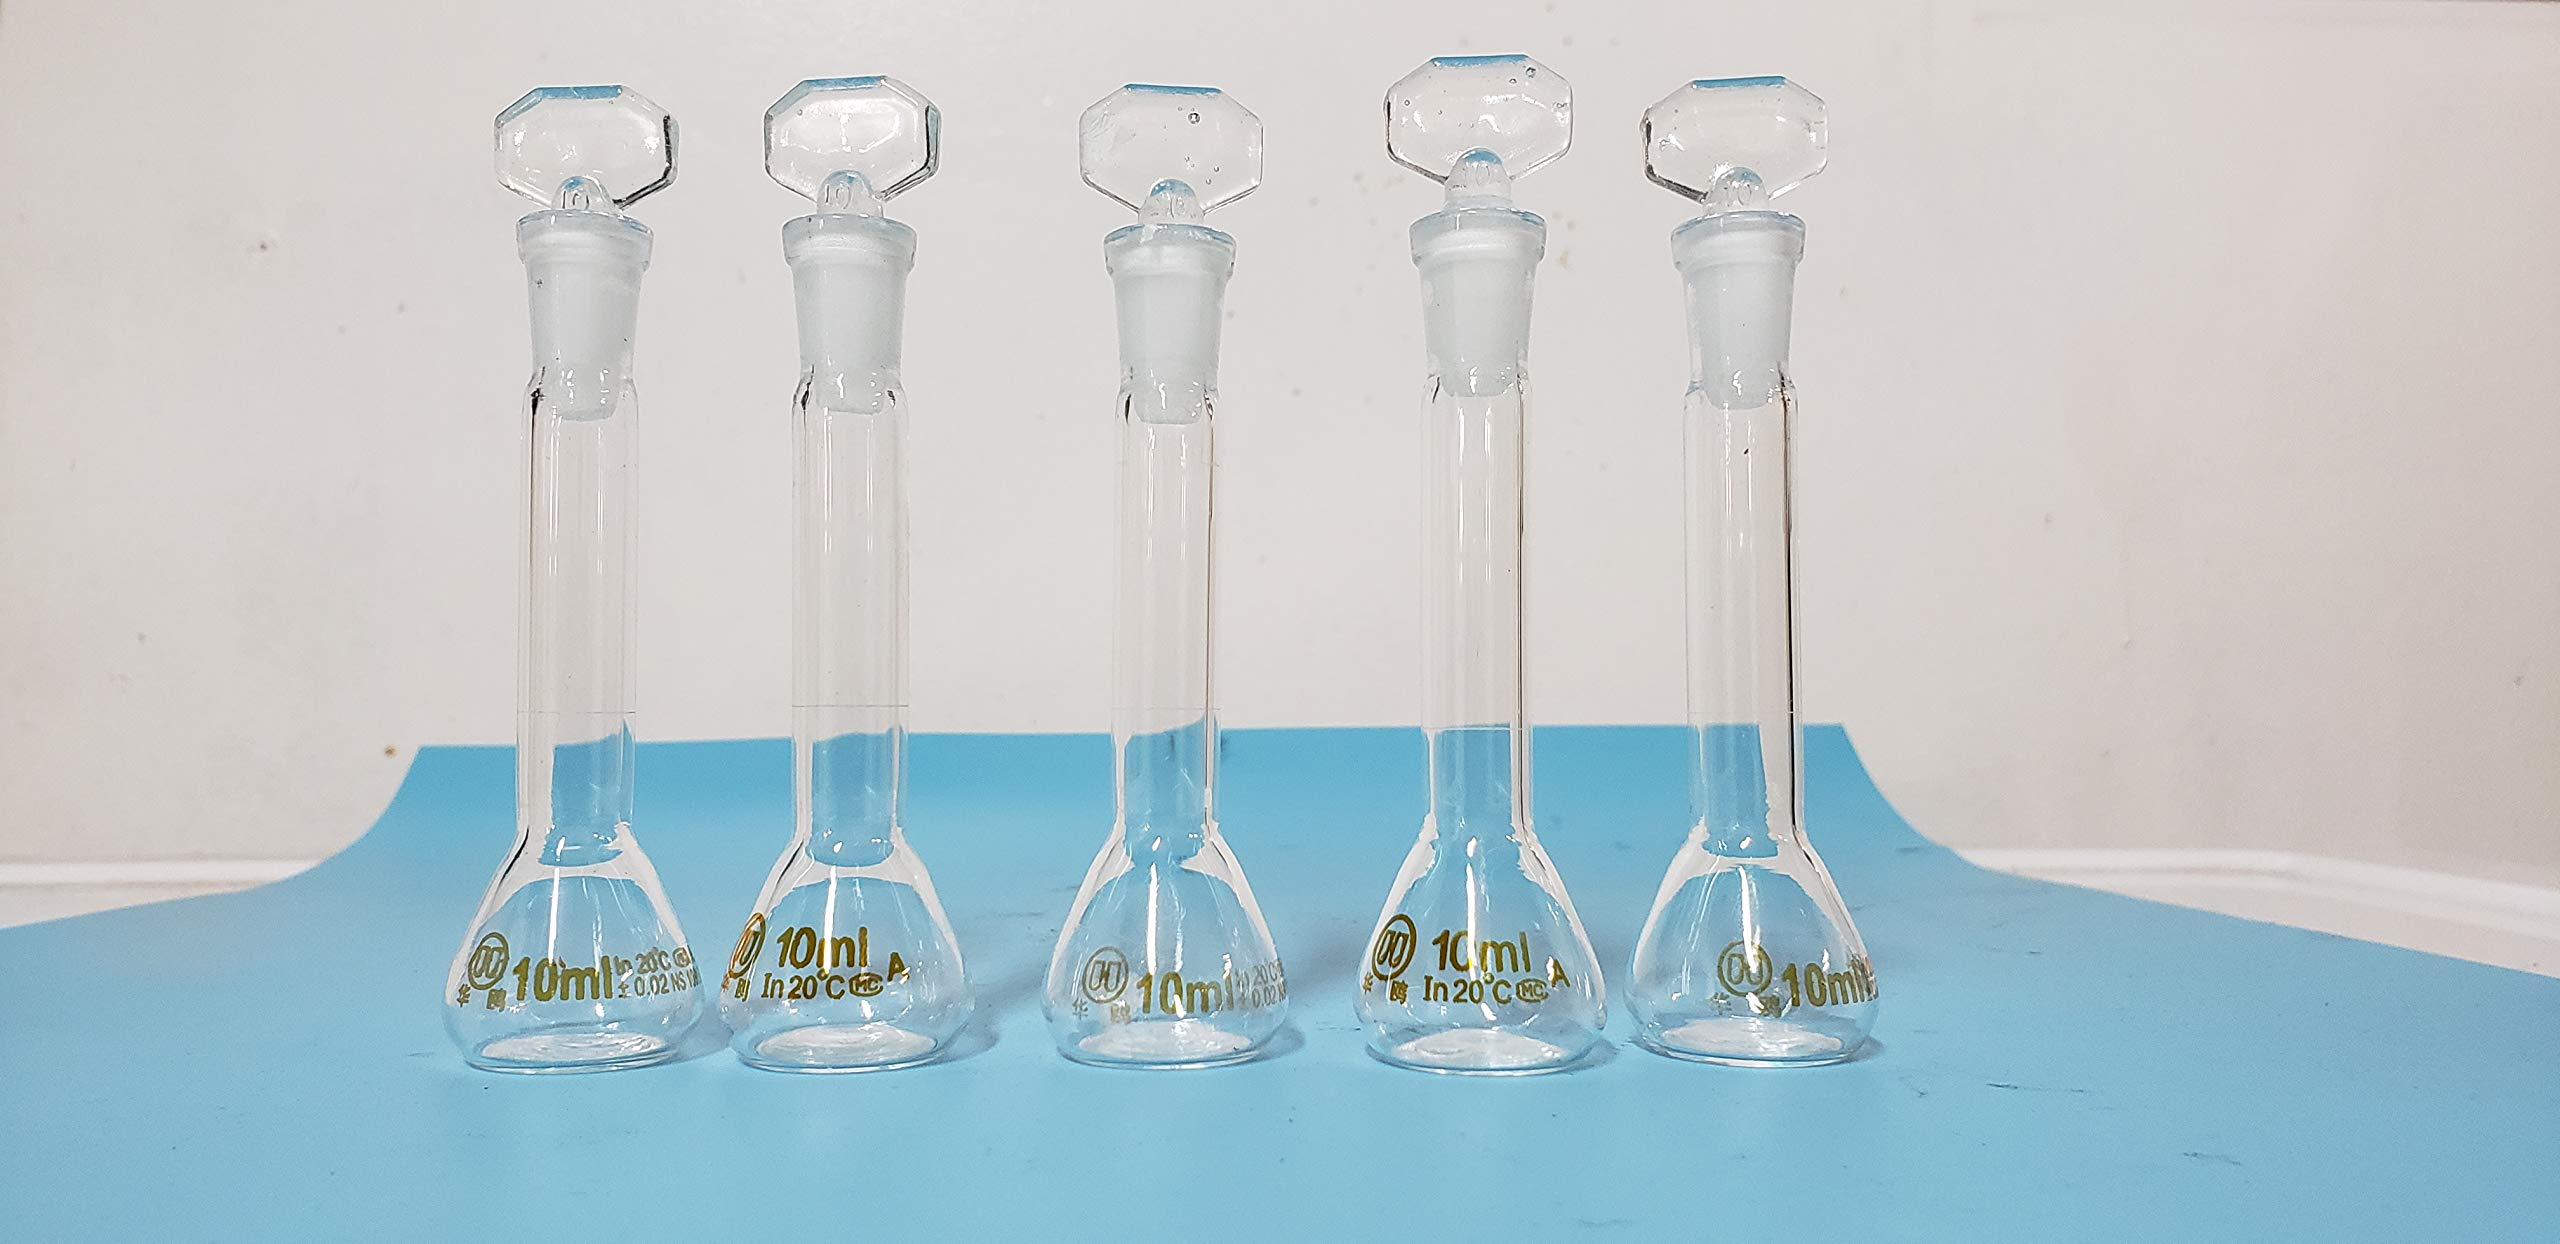 lab Volumetric Flask Class A Borosilicate Glass 10 ml a Set of 5 New by beyondsupply